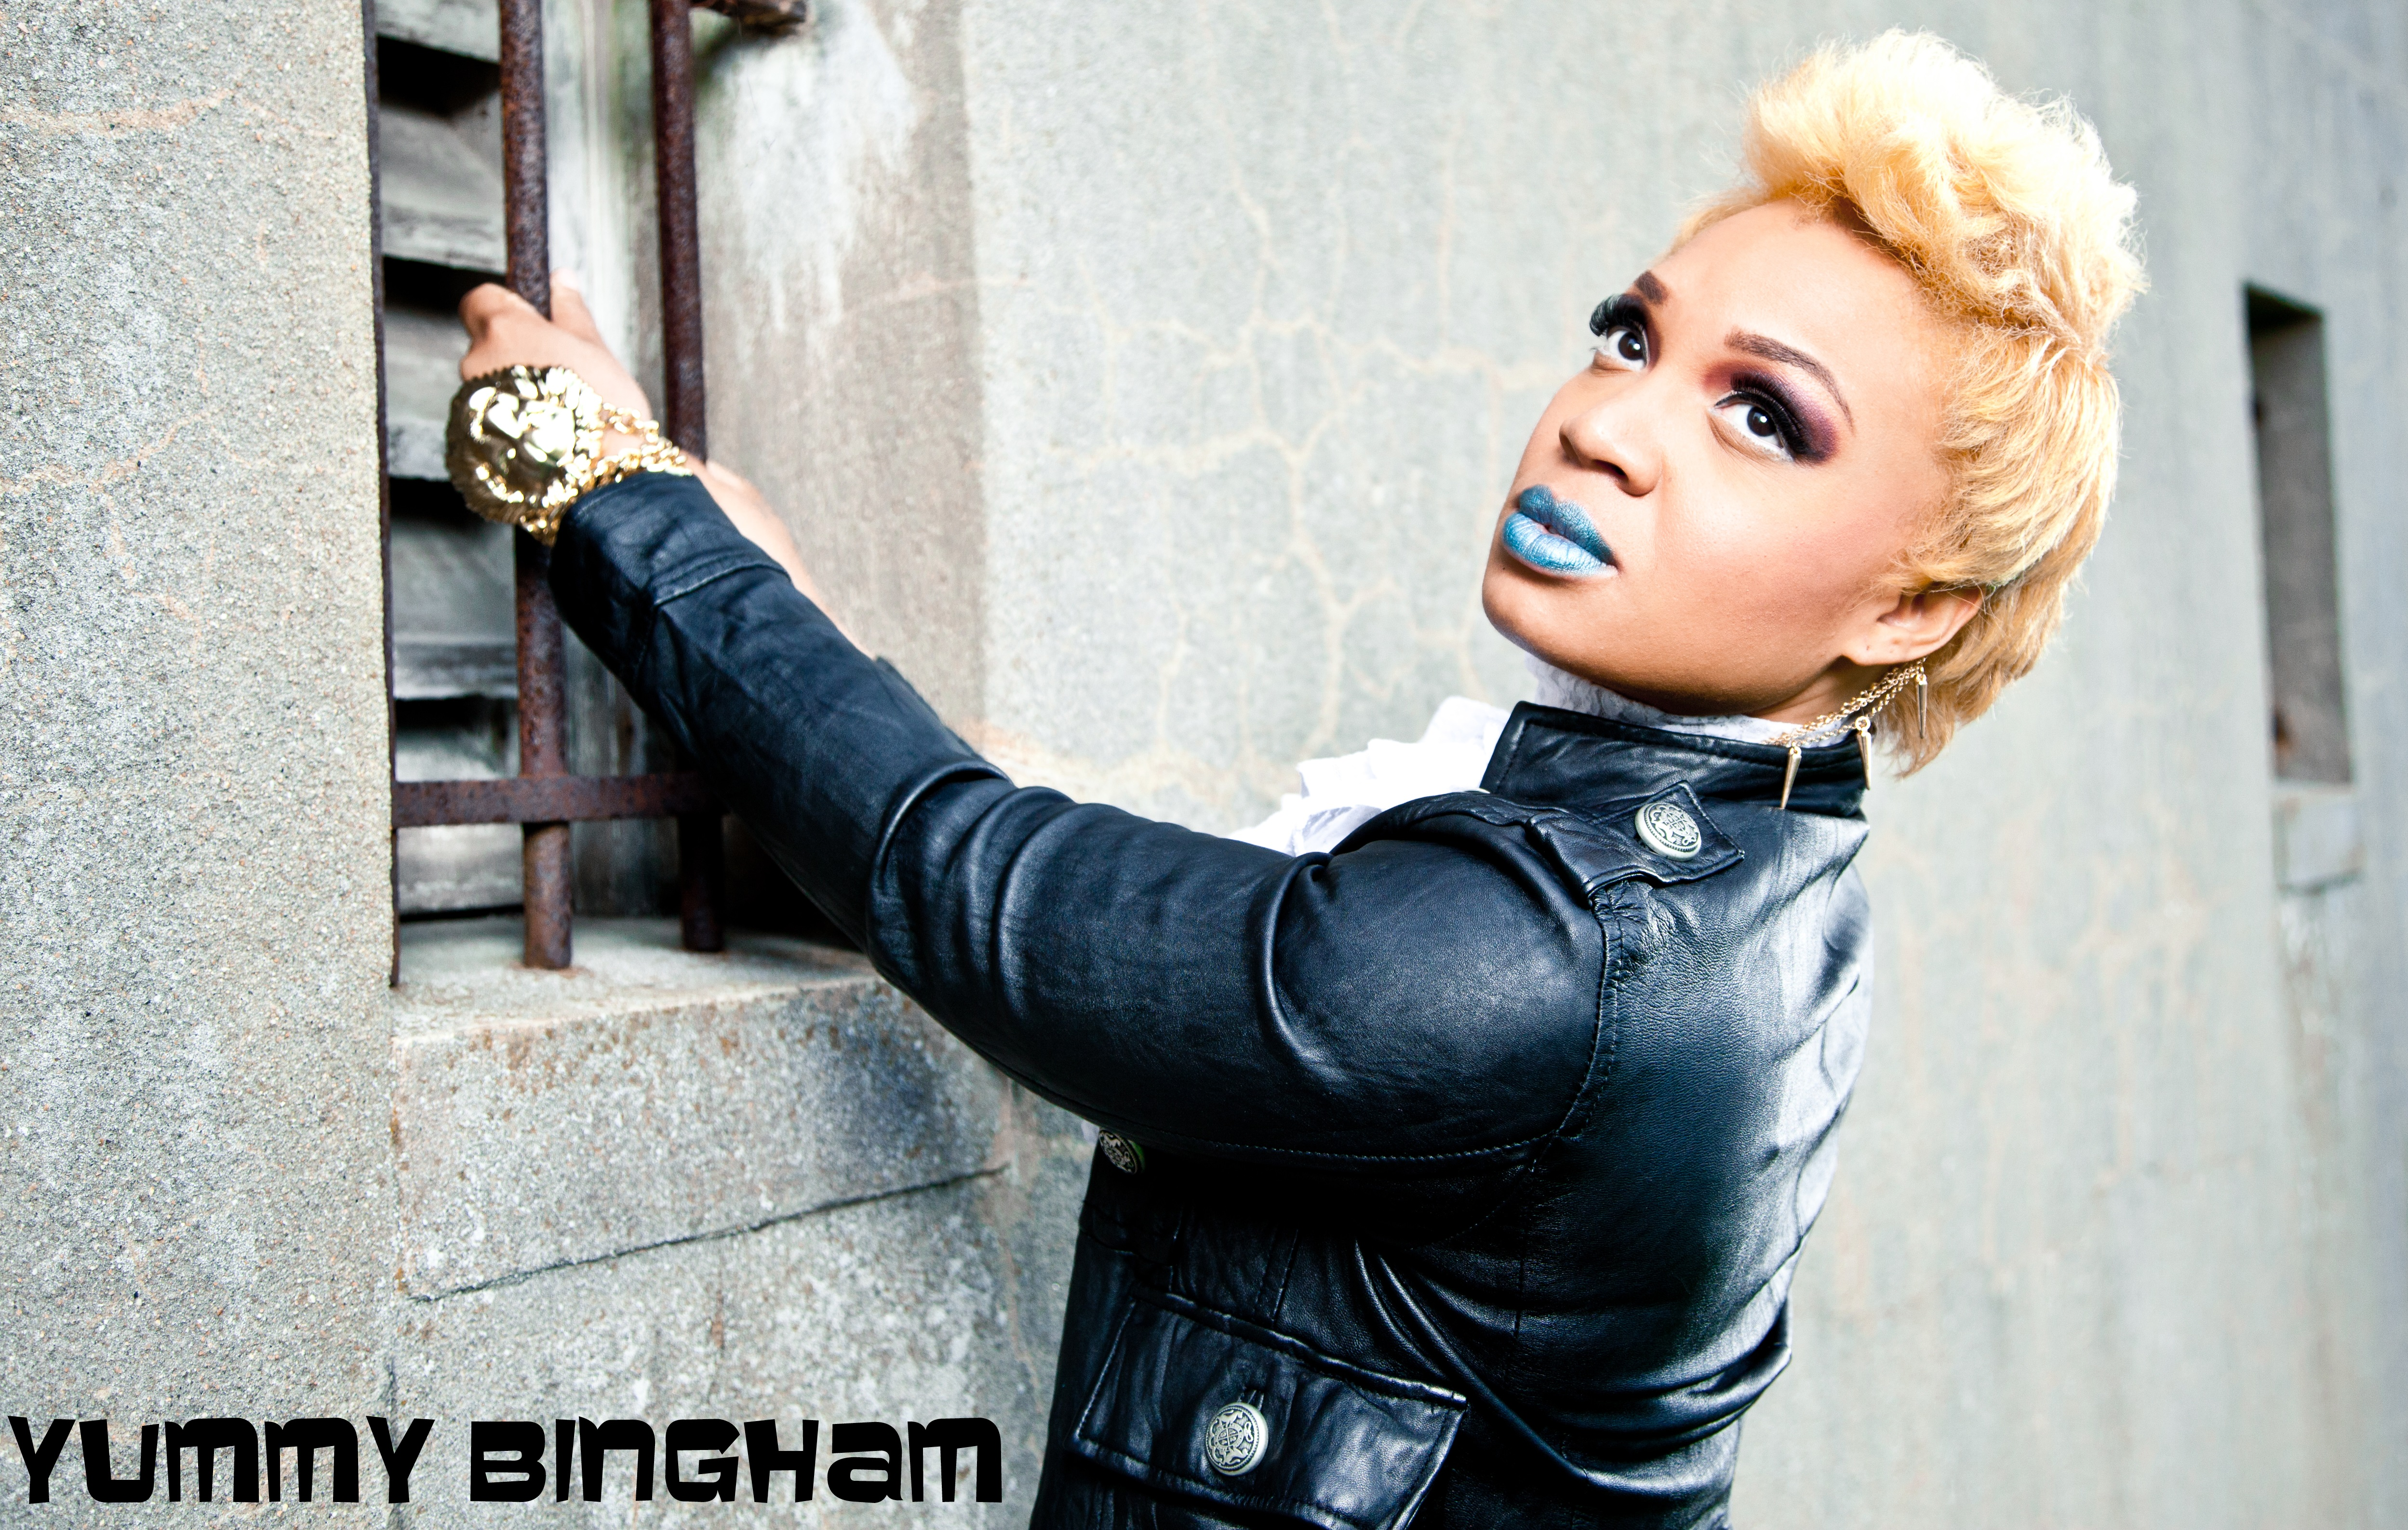 Bingham by download song yummy